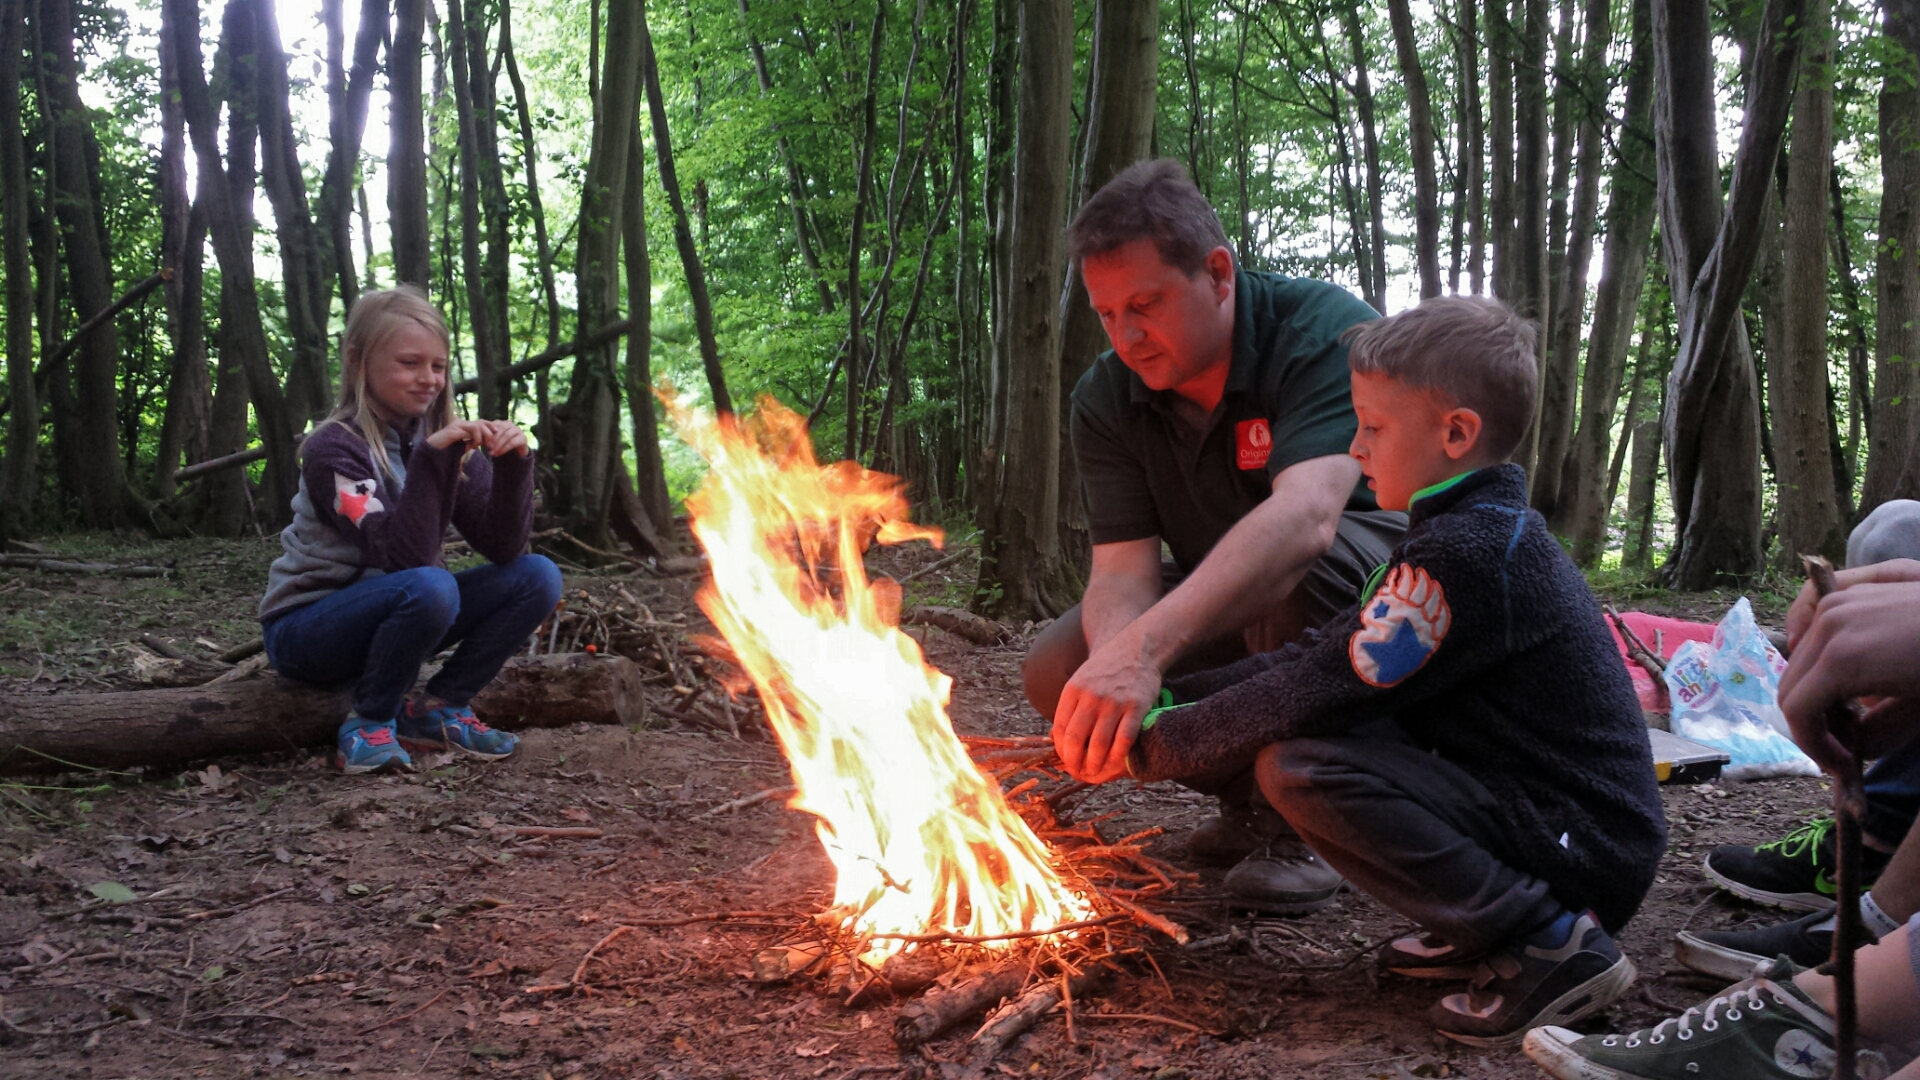 Steve helps a young lad to safely add fuel to the fire, he's positioned himself and the boy in a safe position as the wind is blowing the bright orange flames away from them. A girl watches and waits for her turn to have a go at managing the fire.